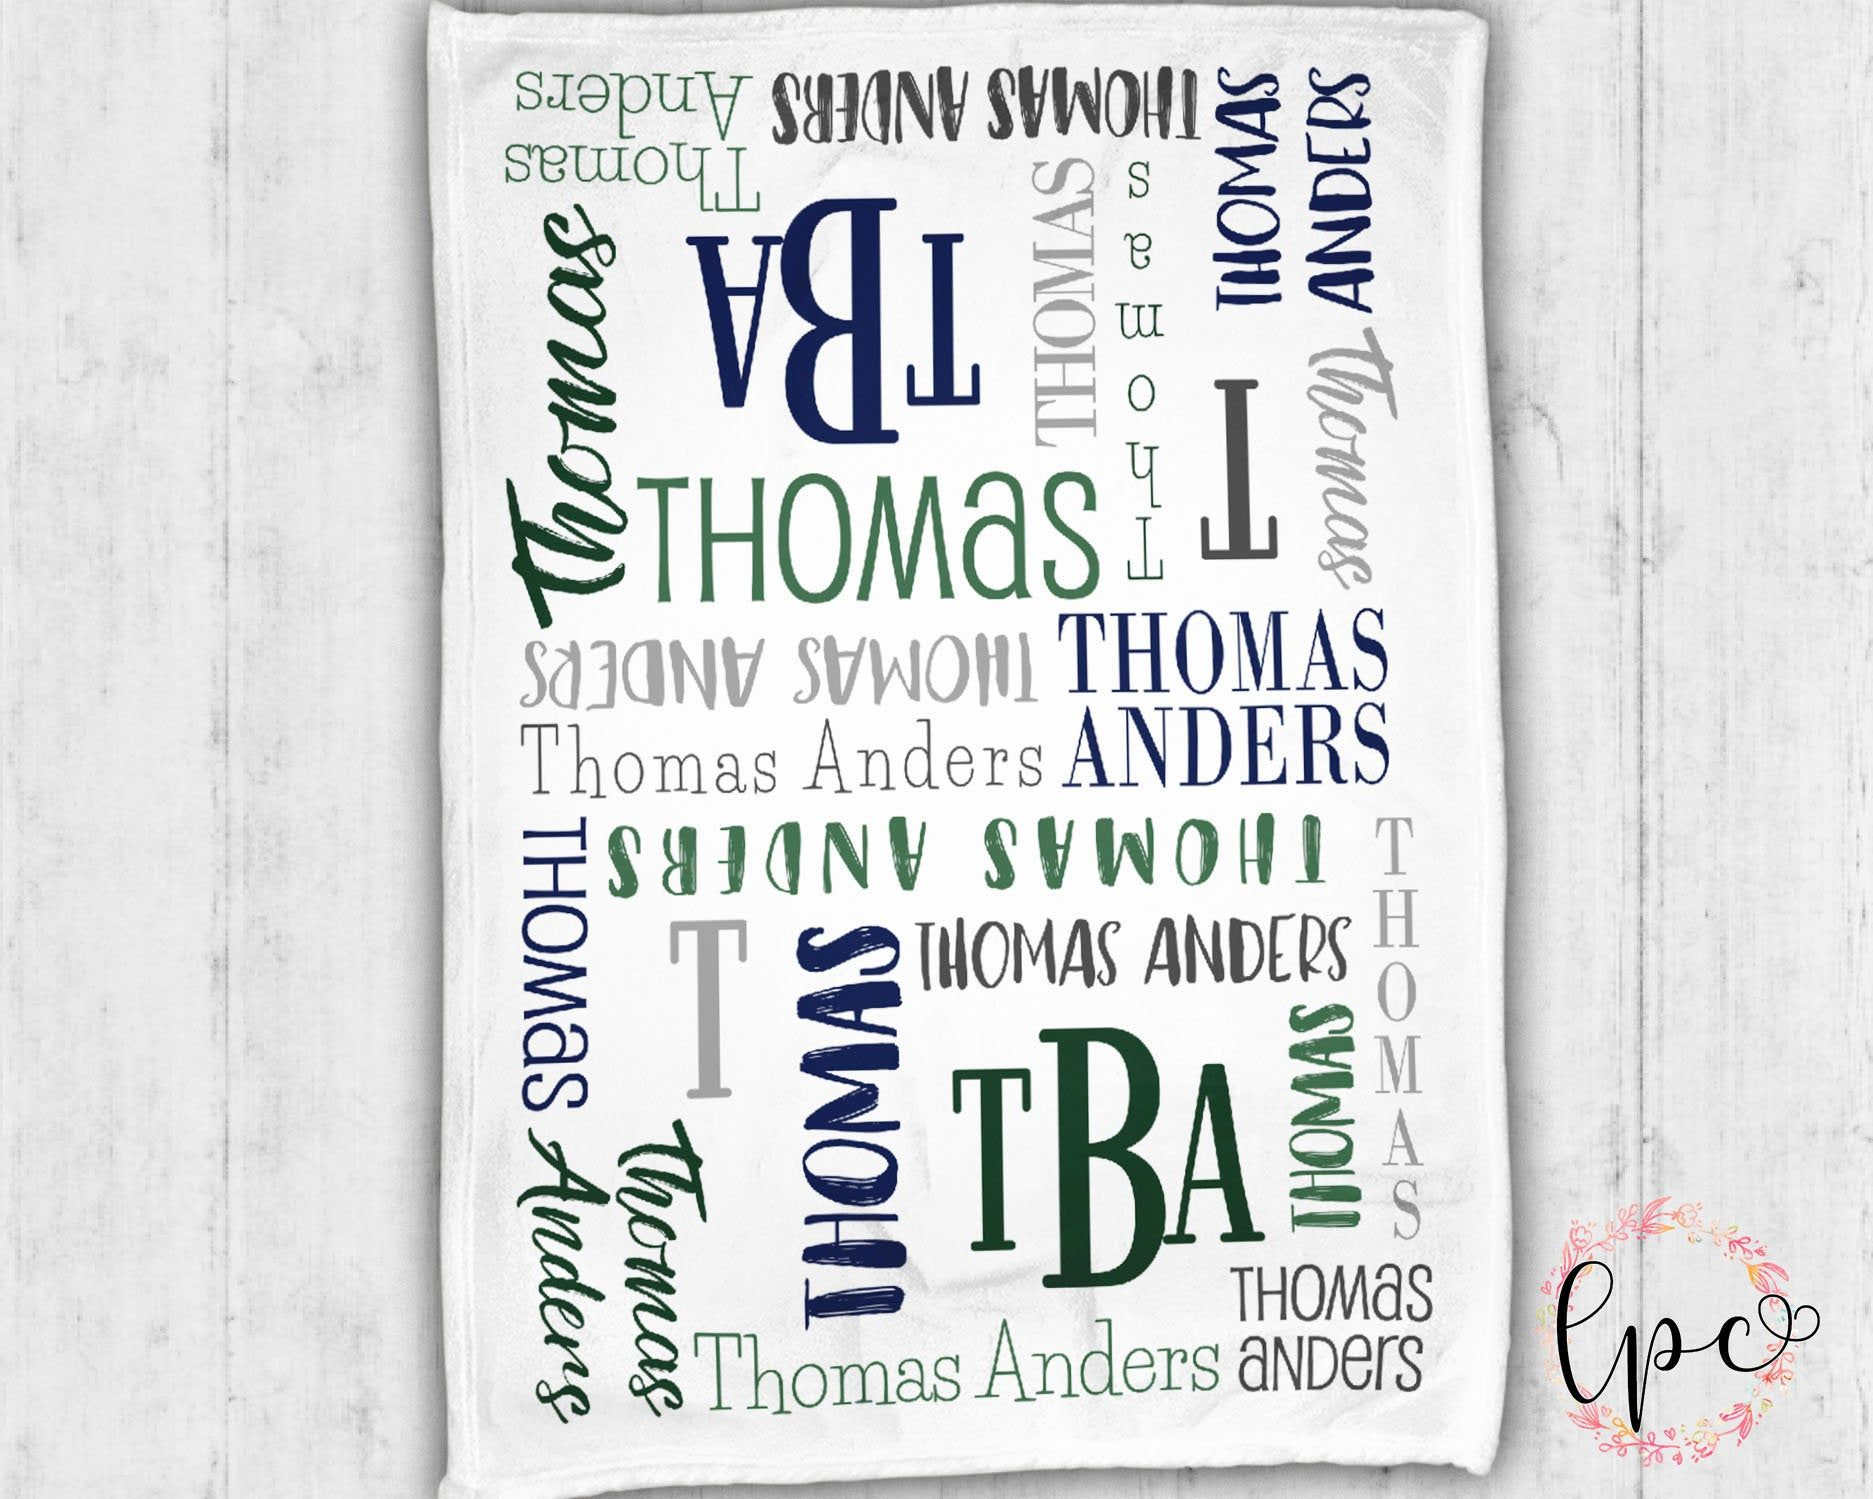 Personalized Baby Name Blanket - Baby Blanket - Name Pattern Blanket - Personalized Baby Blanket - Baby Shower Gift - Throw Blanket